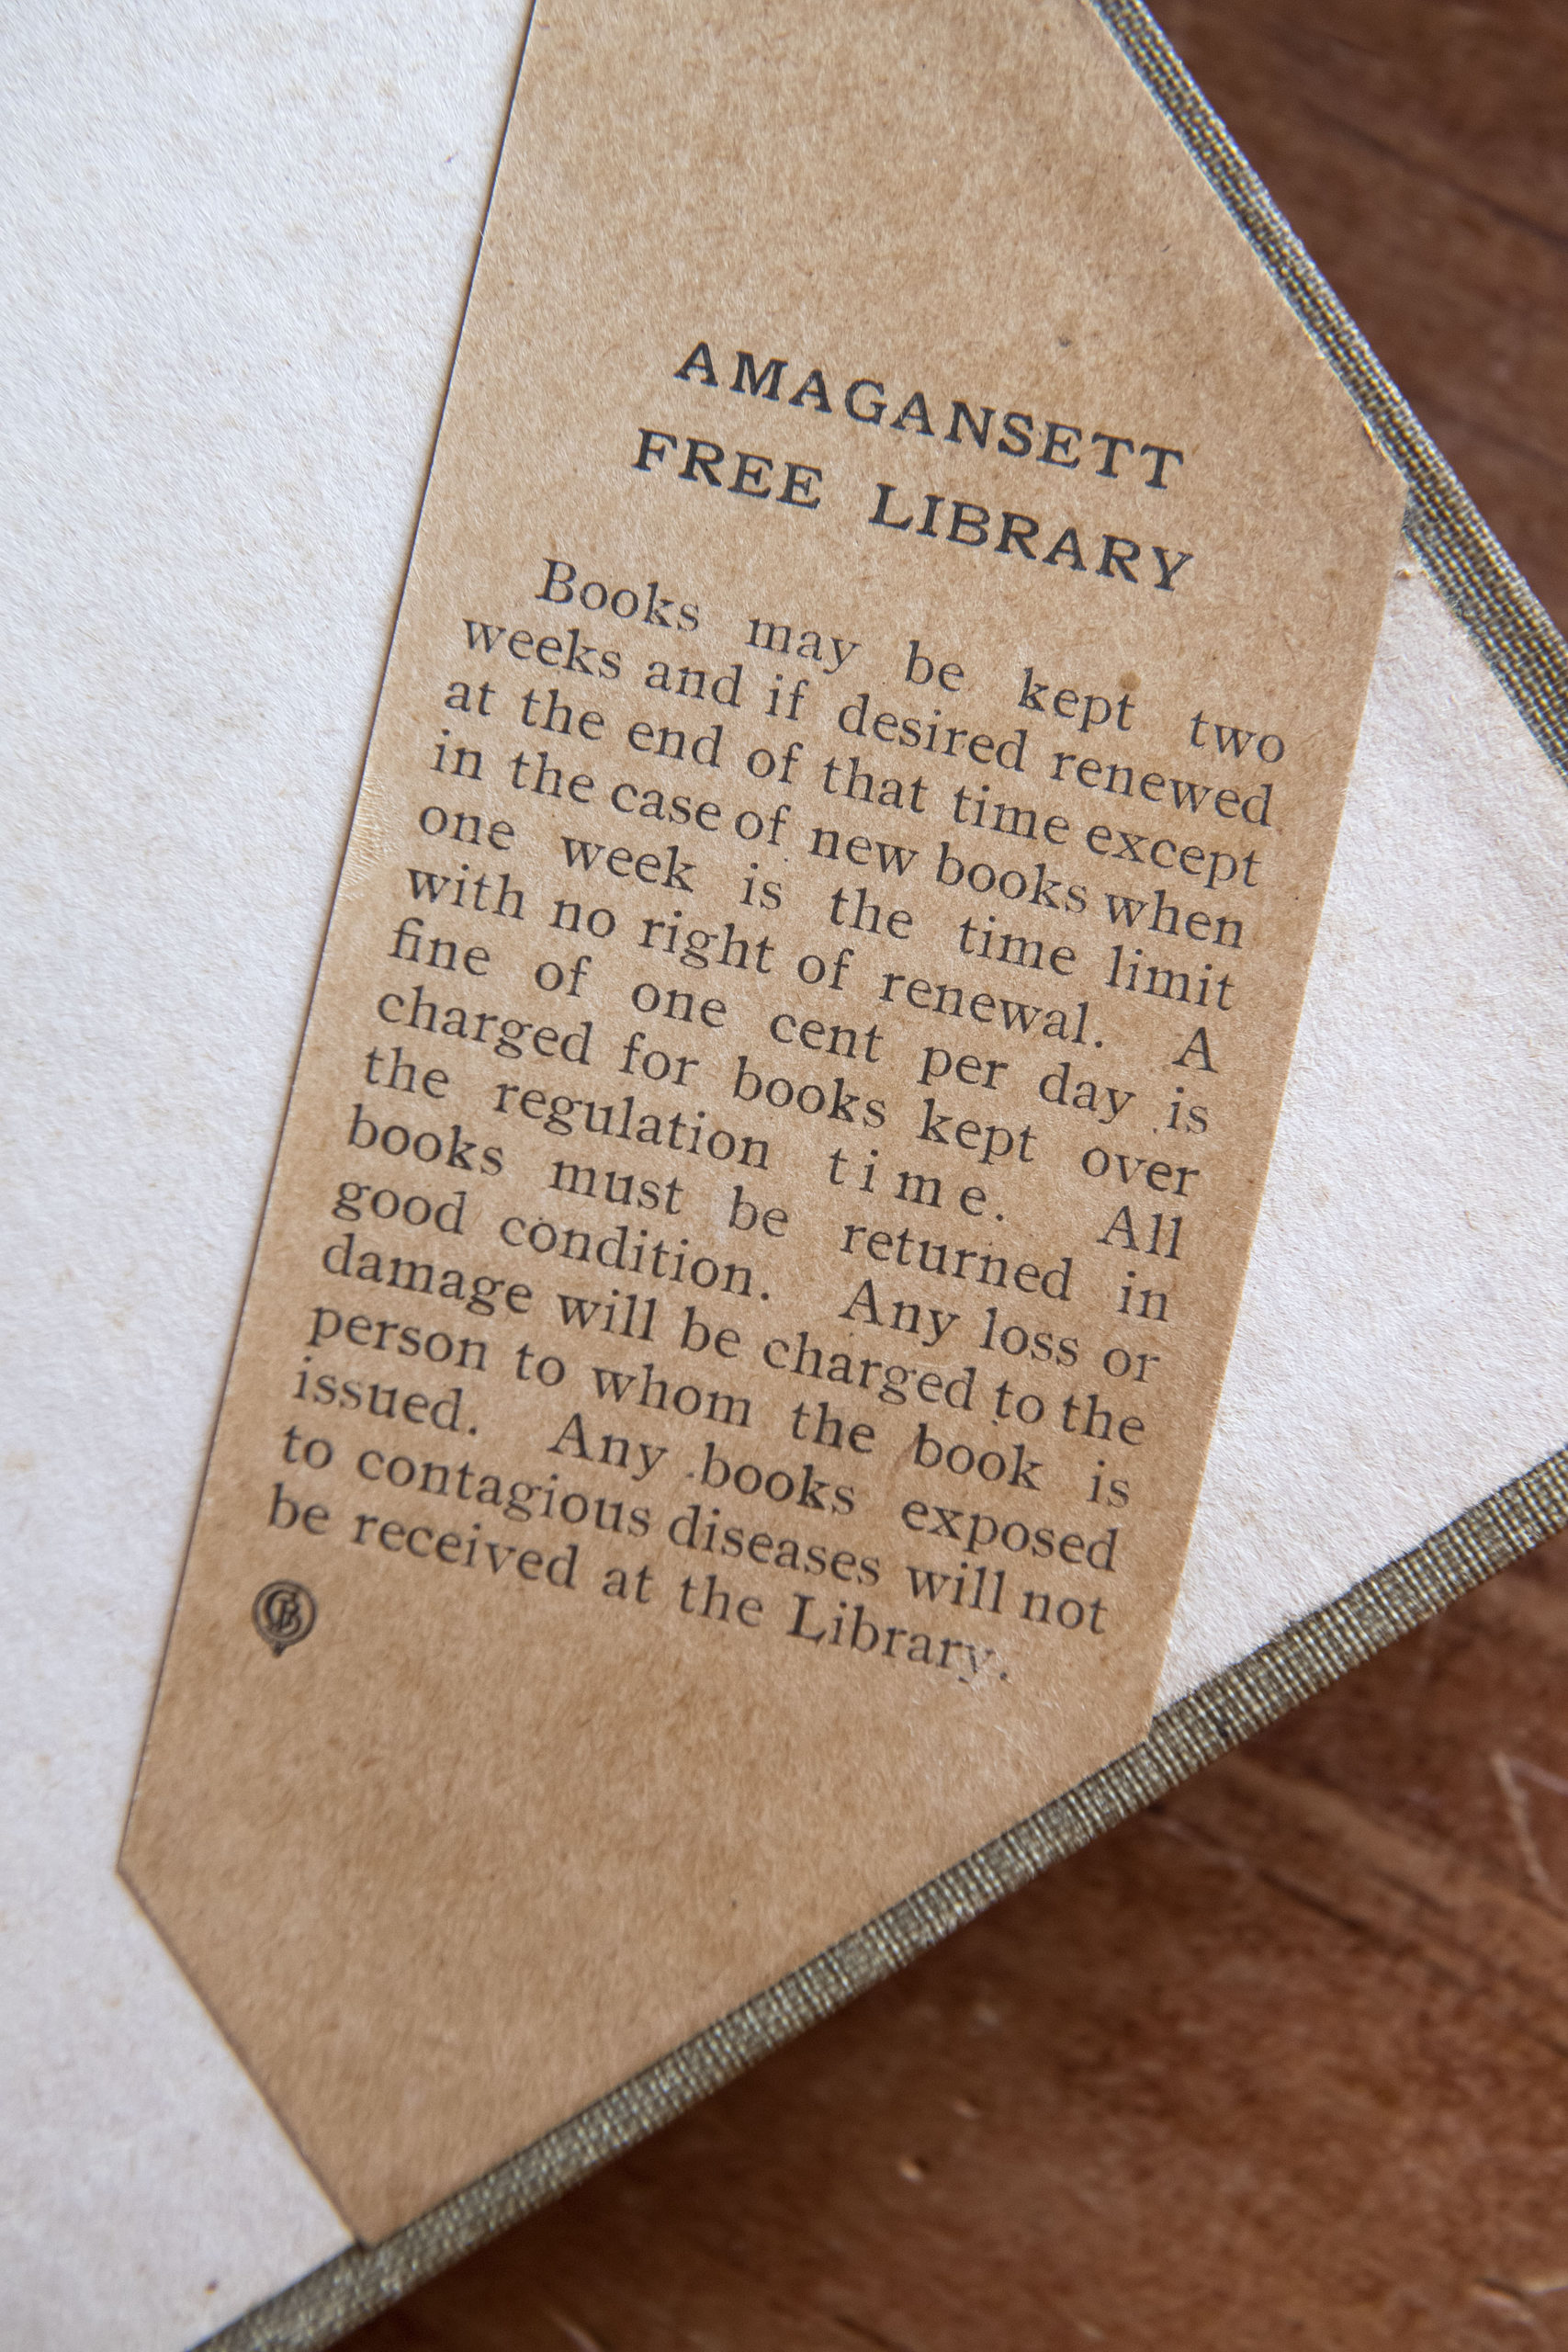 The library policy that was in place when the book was last in circulation.